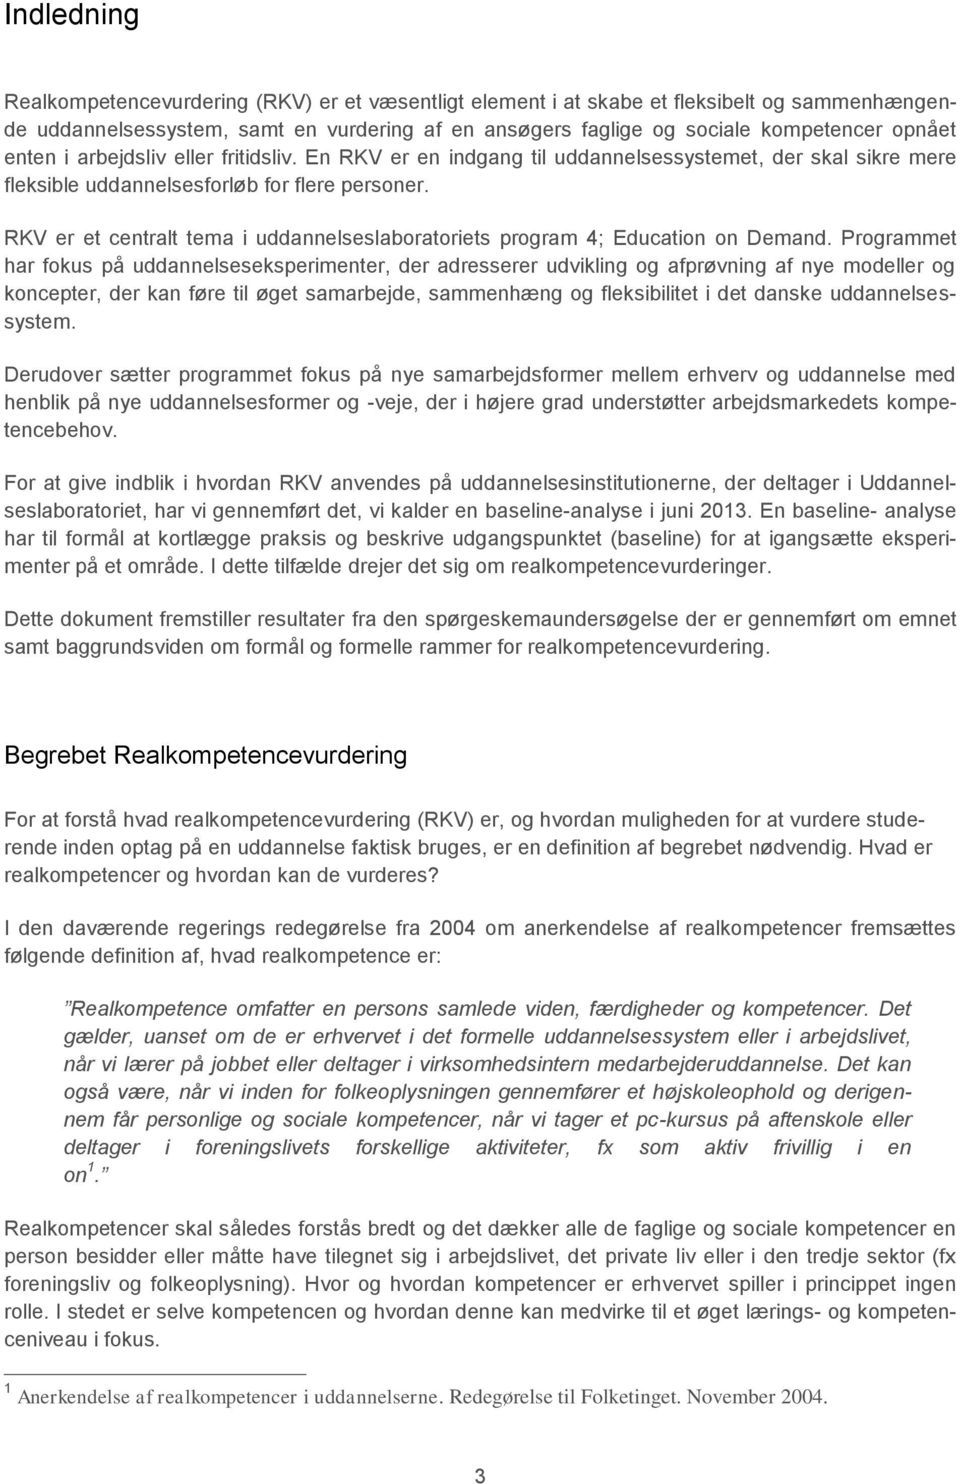 RKV er et centralt tema i uddannelseslaboratoriets program 4; Education on Demand.